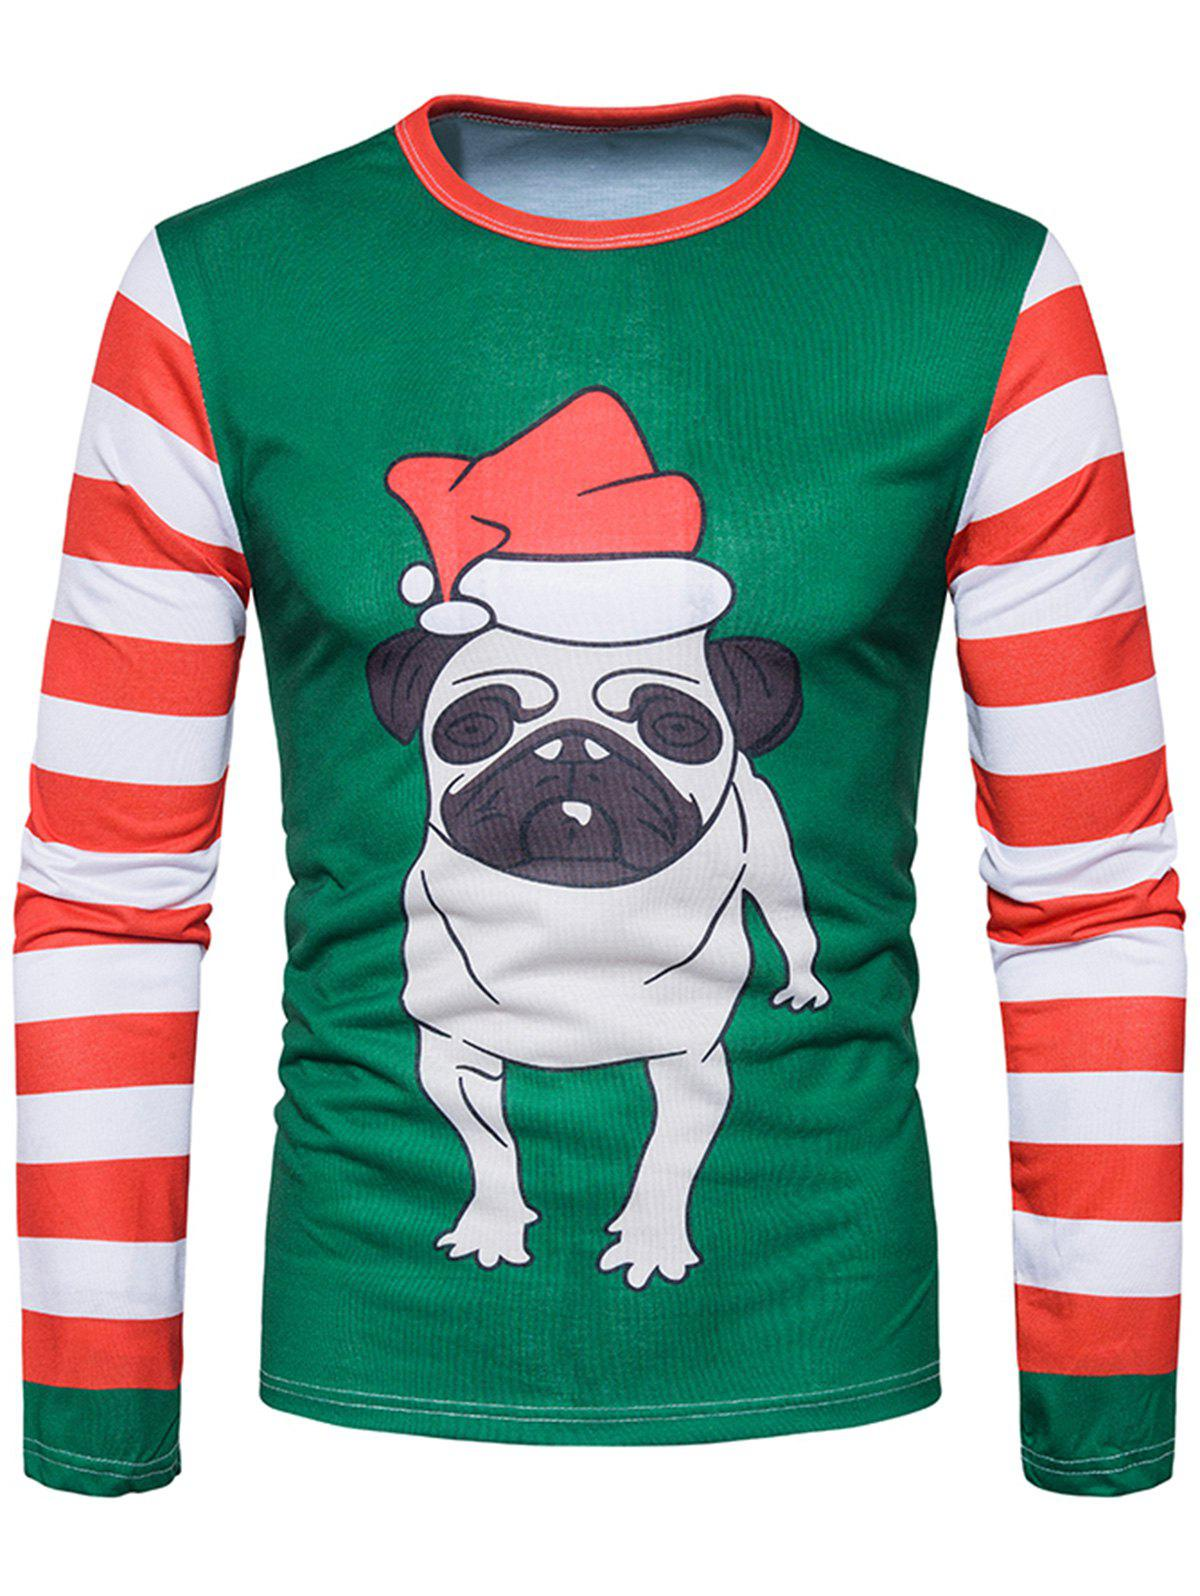 3D Dog Print Stripe Long Sleeve T-shirtMEN<br><br>Size: L; Color: DEEP GREEN; Material: Cotton,Polyester; Sleeve Length: Full; Collar: Crew Neck; Style: Casual,Fashion,Streetwear; Pattern Type: 3D,Animal,Striped; Season: Fall; Weight: 0.3000kg; Package Contents: 1 x T-shirt;